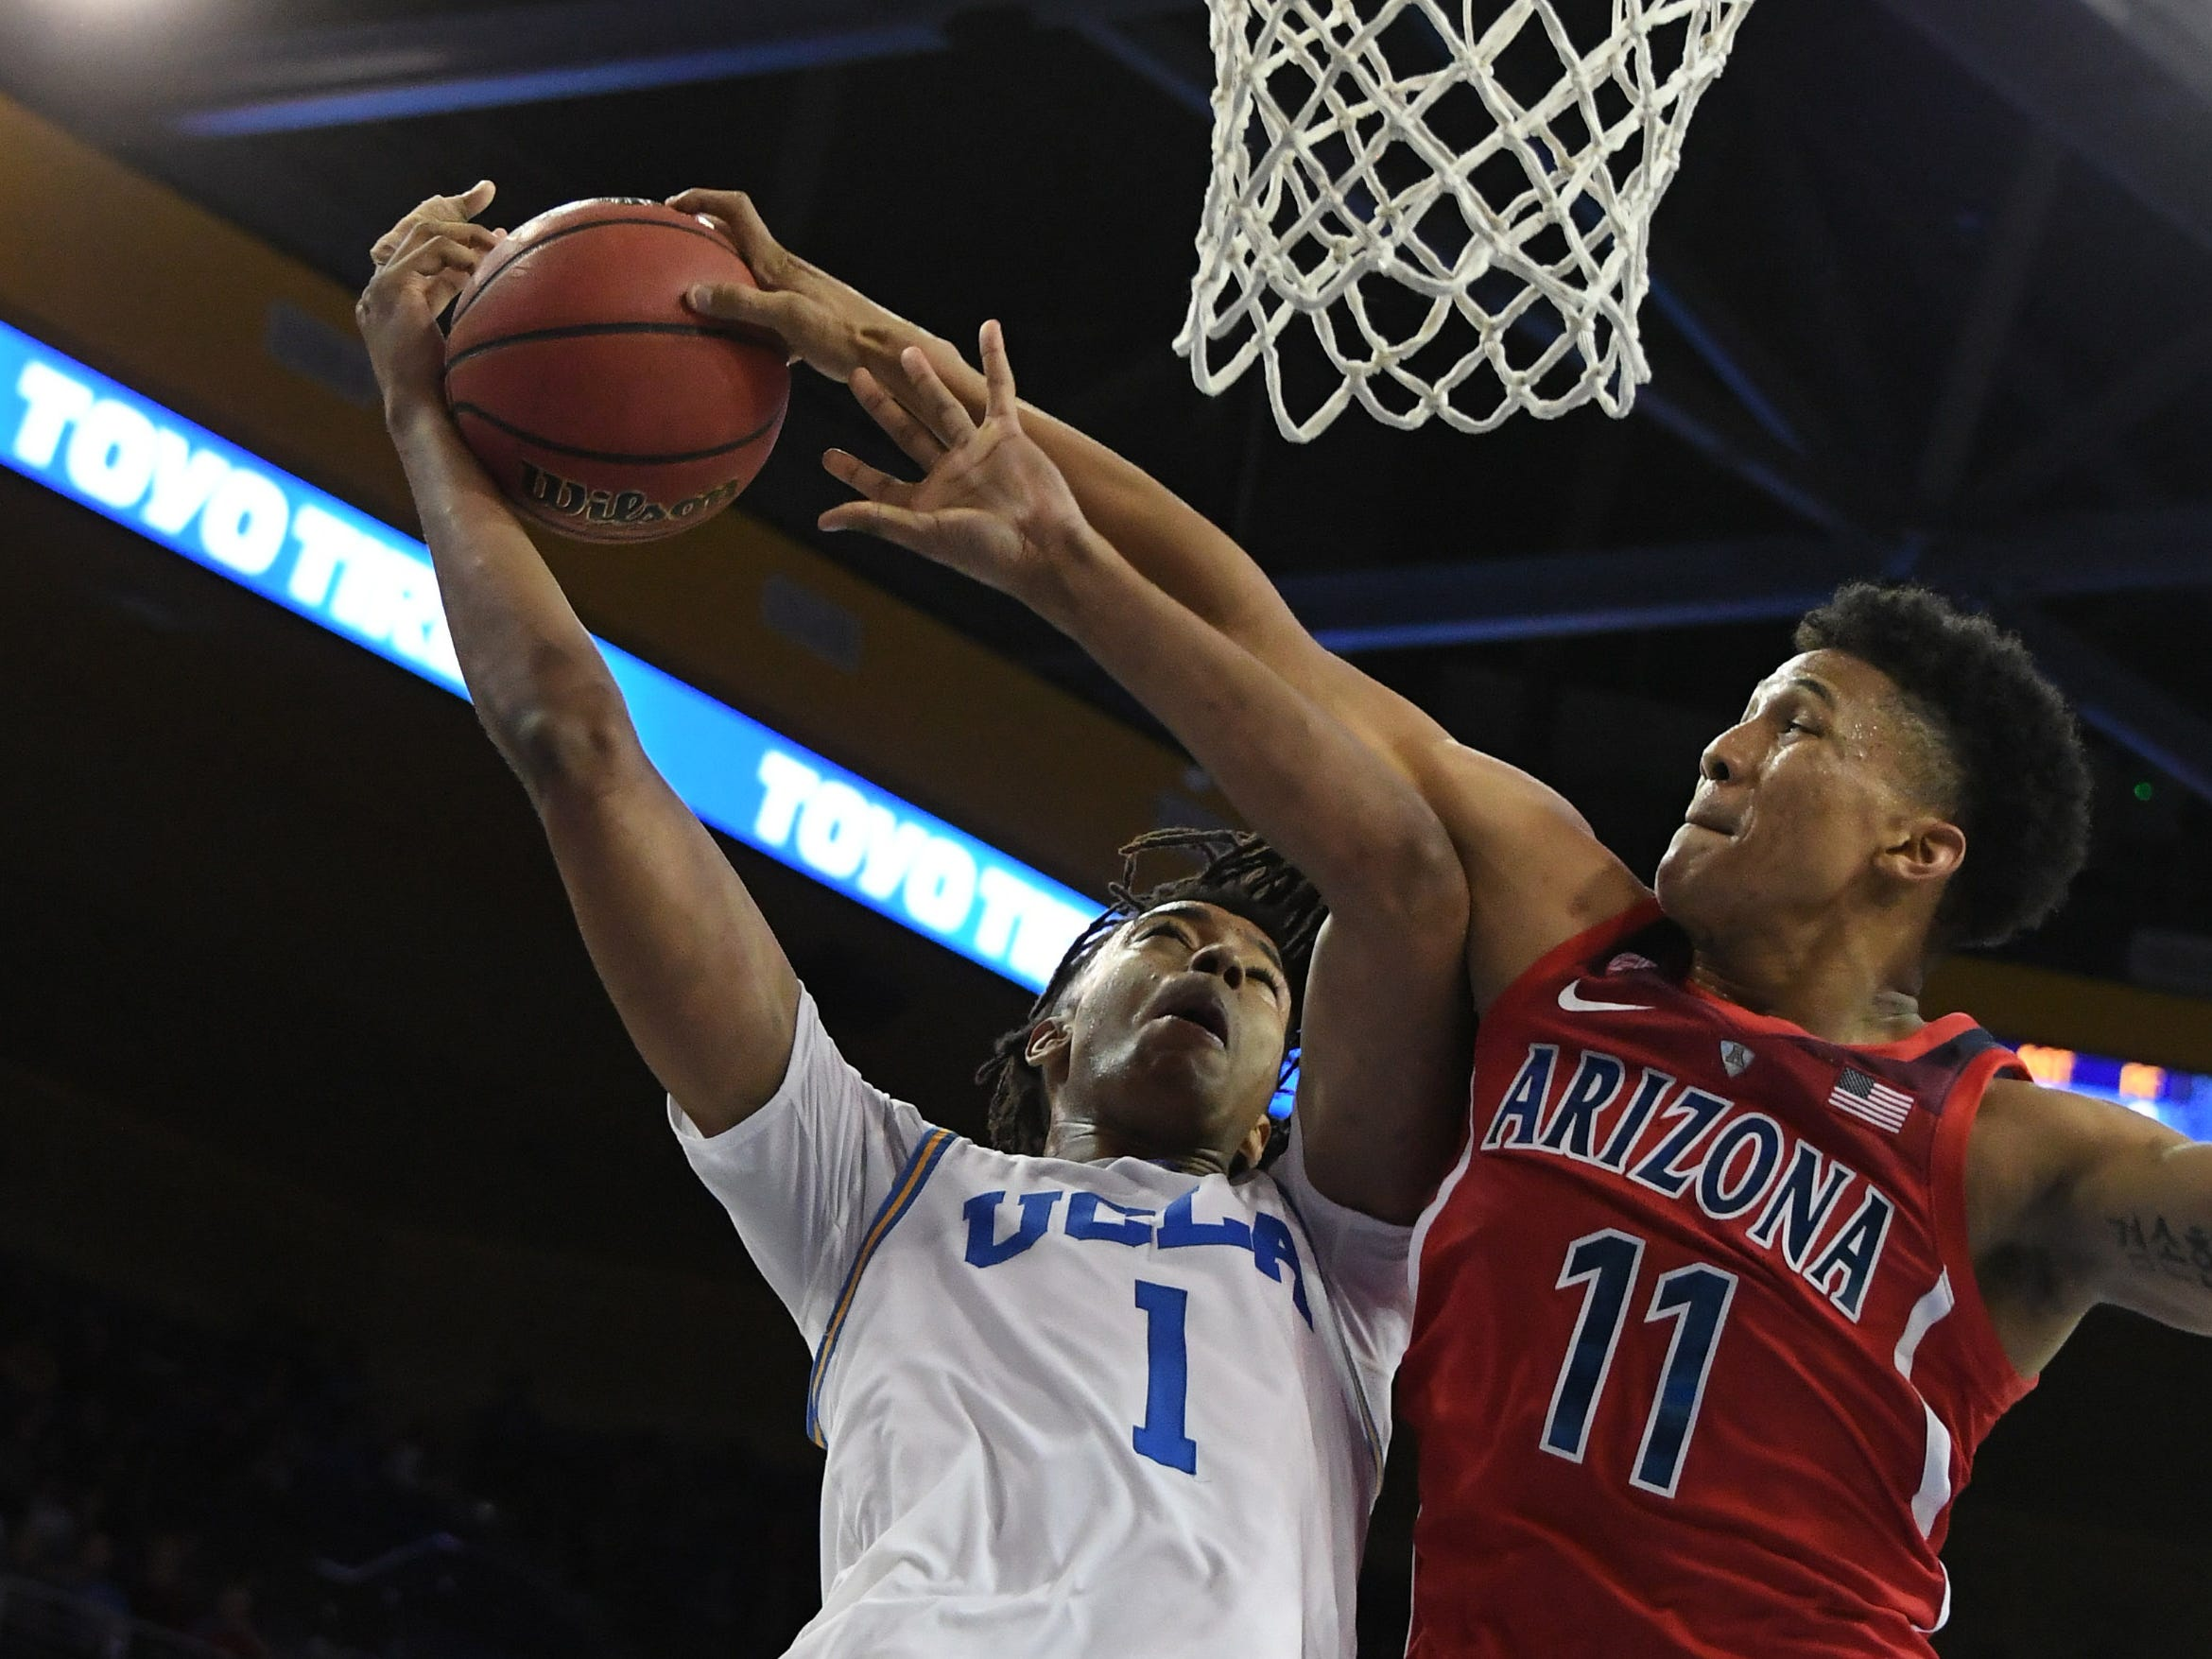 Jan 26, 2019; Los Angeles, CA, USA; UCLA Bruins center Moses Brown (1) has his shot blocked by Arizona Wildcats forward Ira Lee (11) in the second half at Pauley Pavilion.